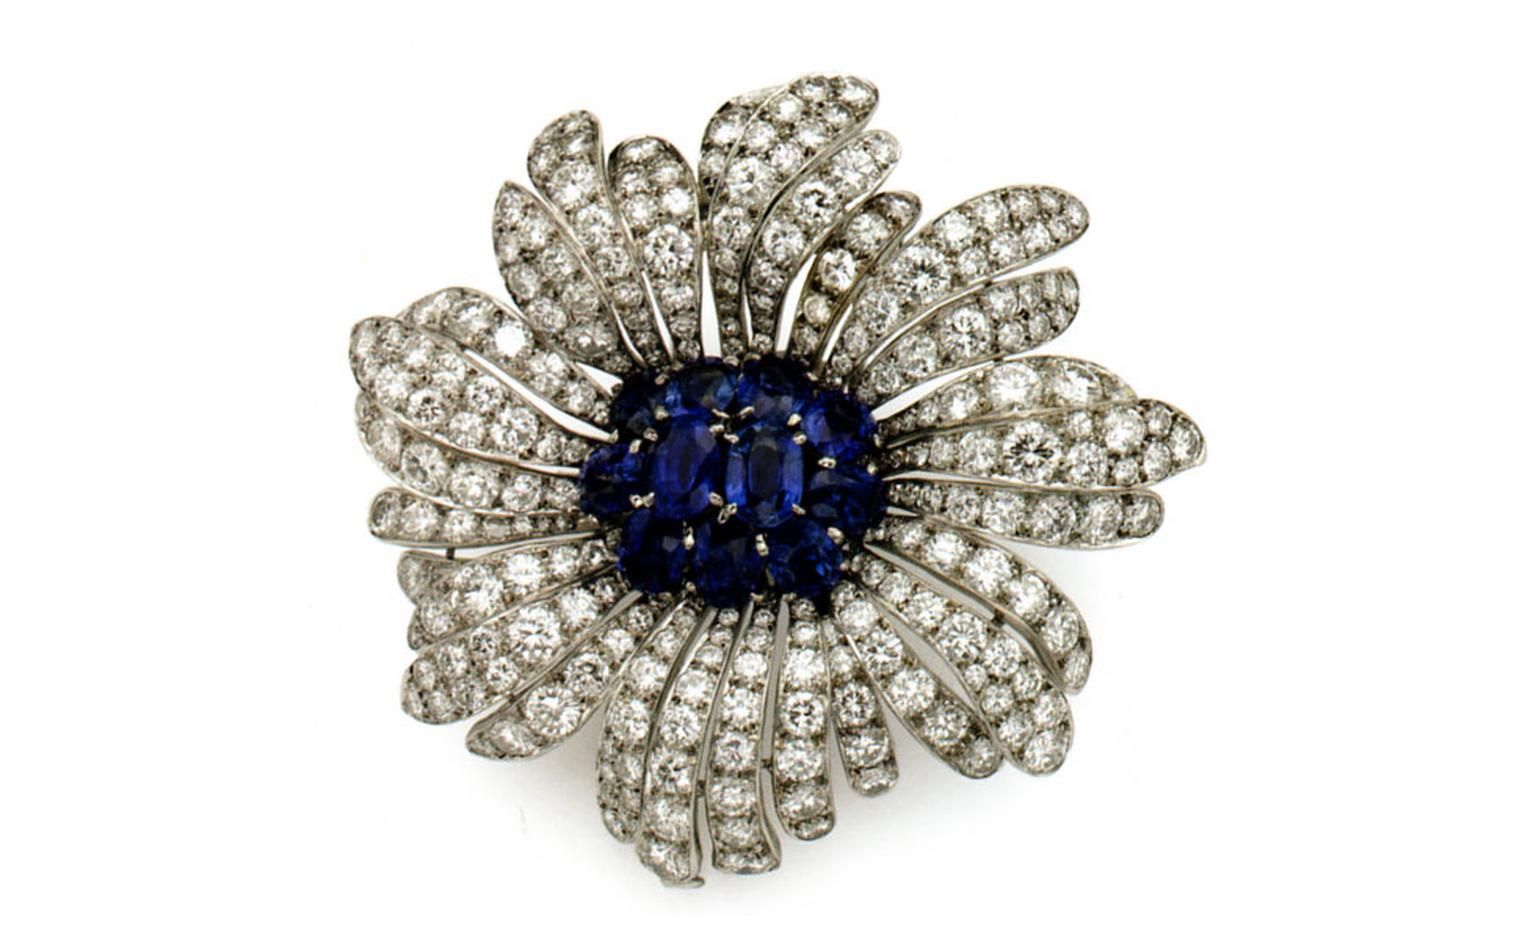 Van Cleef & Arpels diamond and sapphire brooch belonging to Princess Grace.